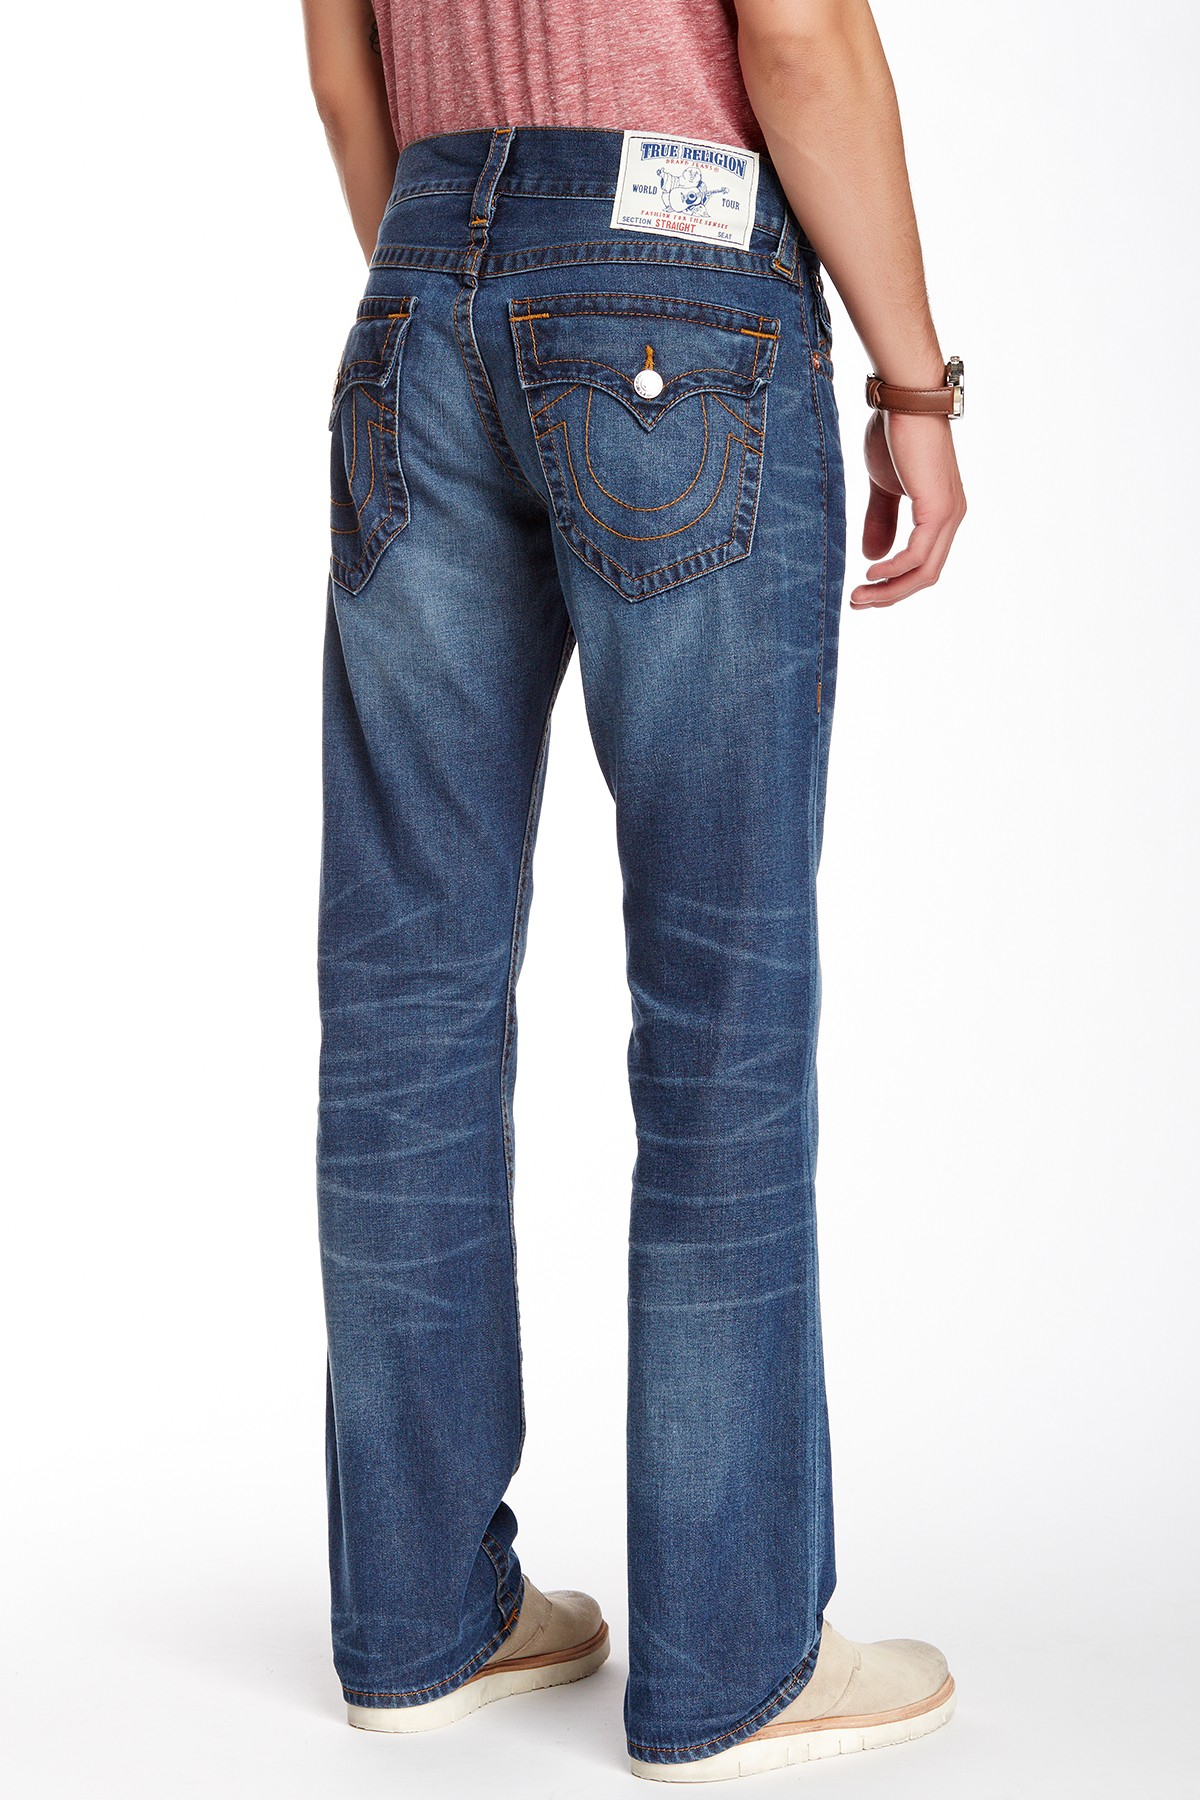 Lyst True Religion Ricky Inglorious Contrast Jeans In